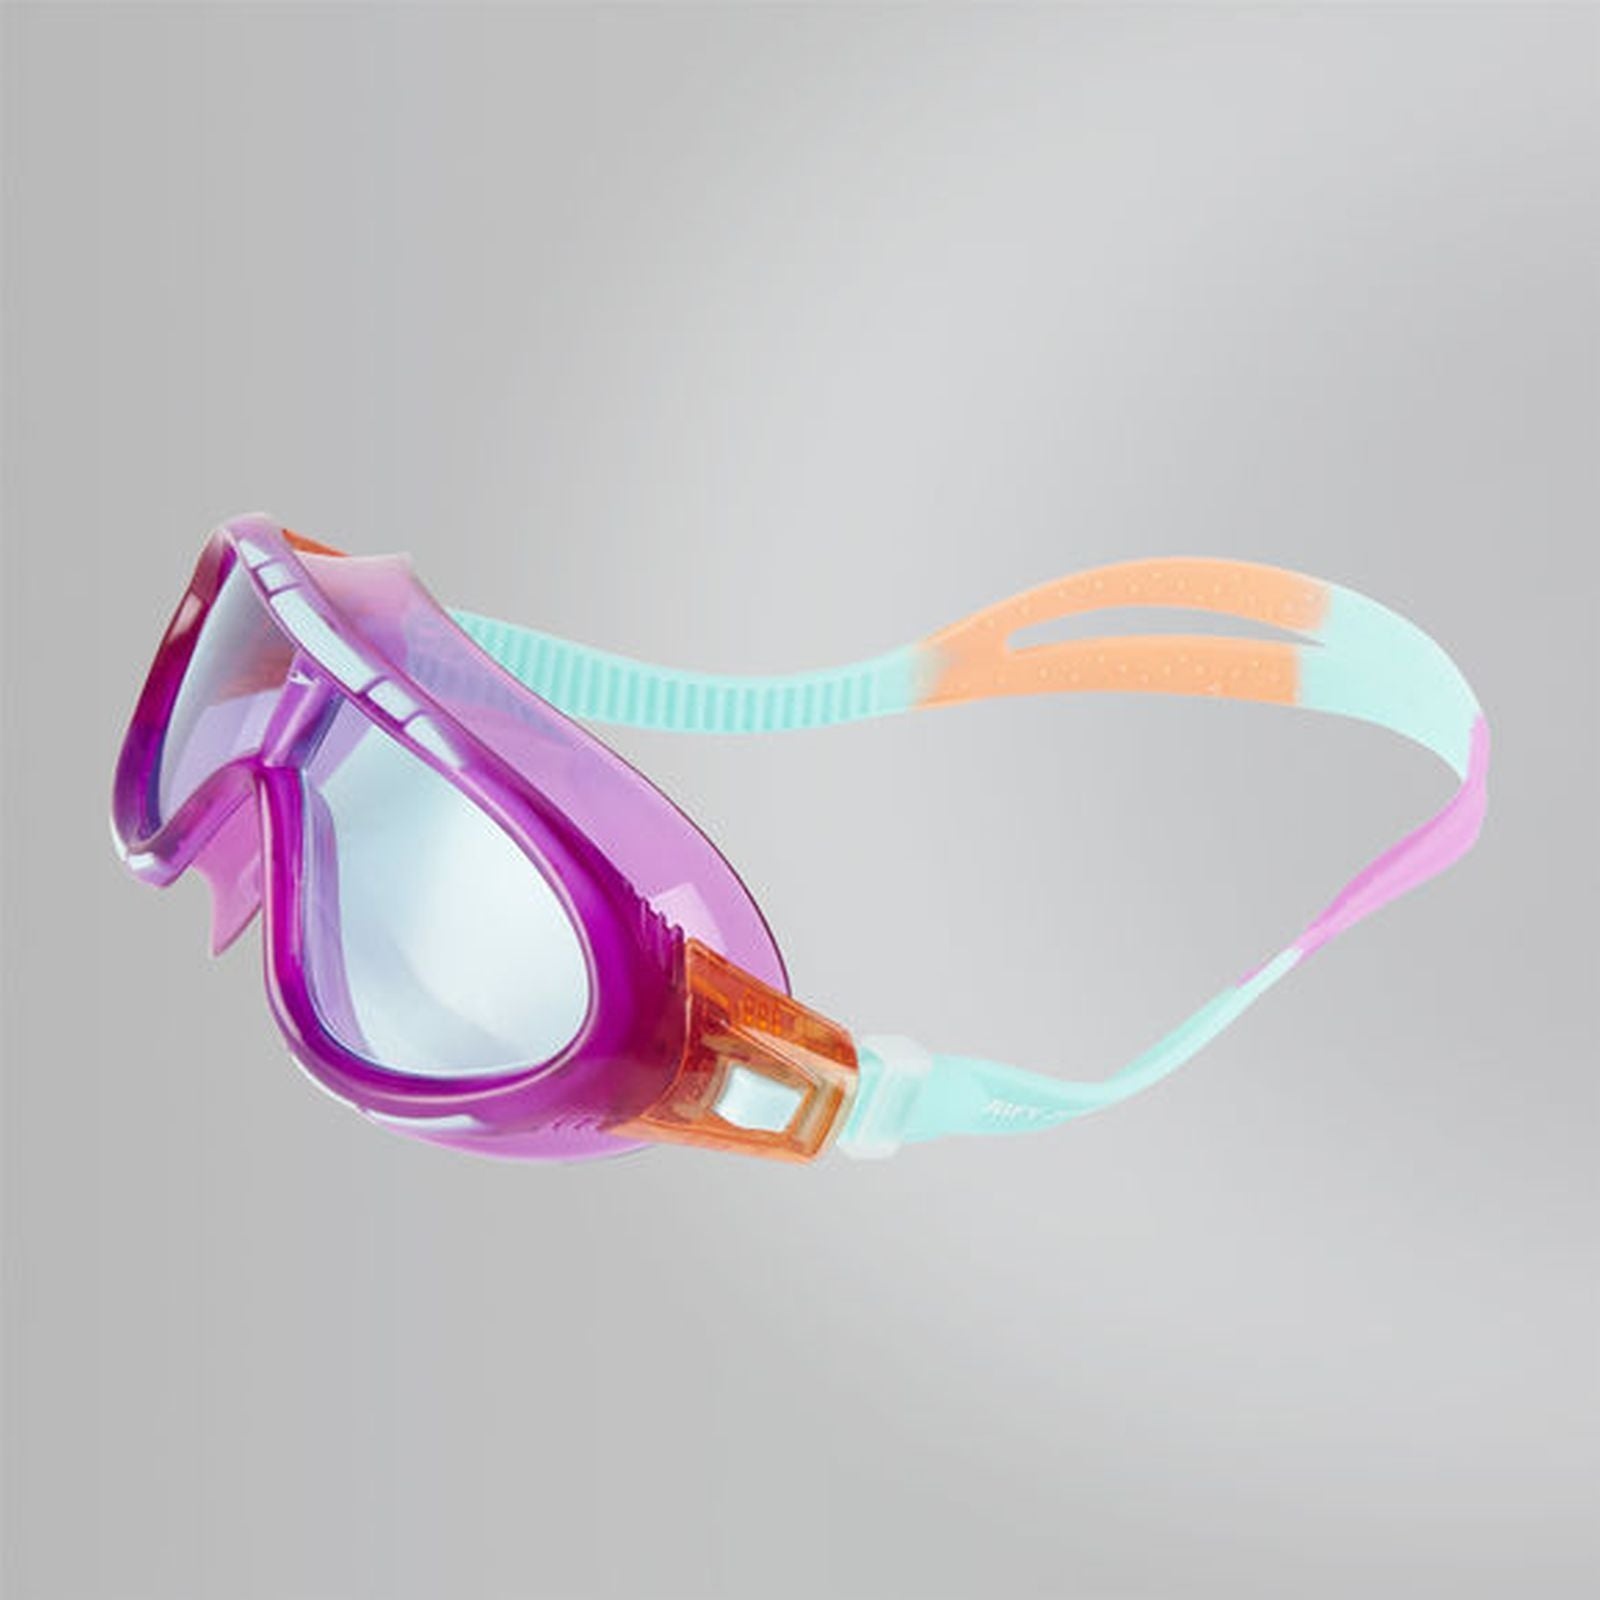 bc5e2e625021 Buy Speedo Kids Biofuse Rift Online in Singapore